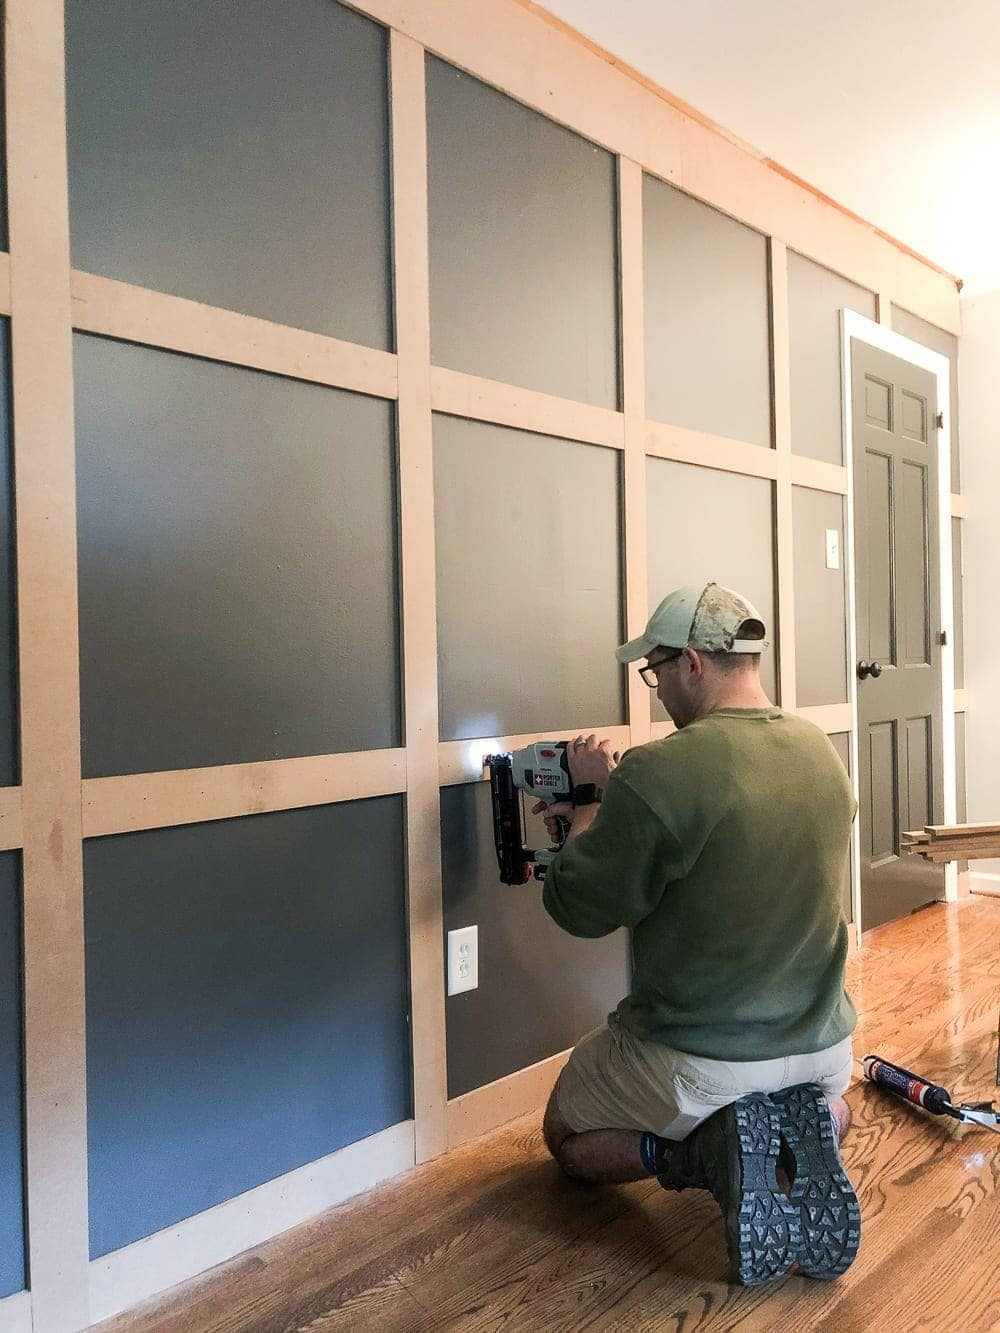 DIY Traditional Style Grid Molding Focal Wall | How to build a traditional style board and batten grid molding focal wall to add character and depth to any room.